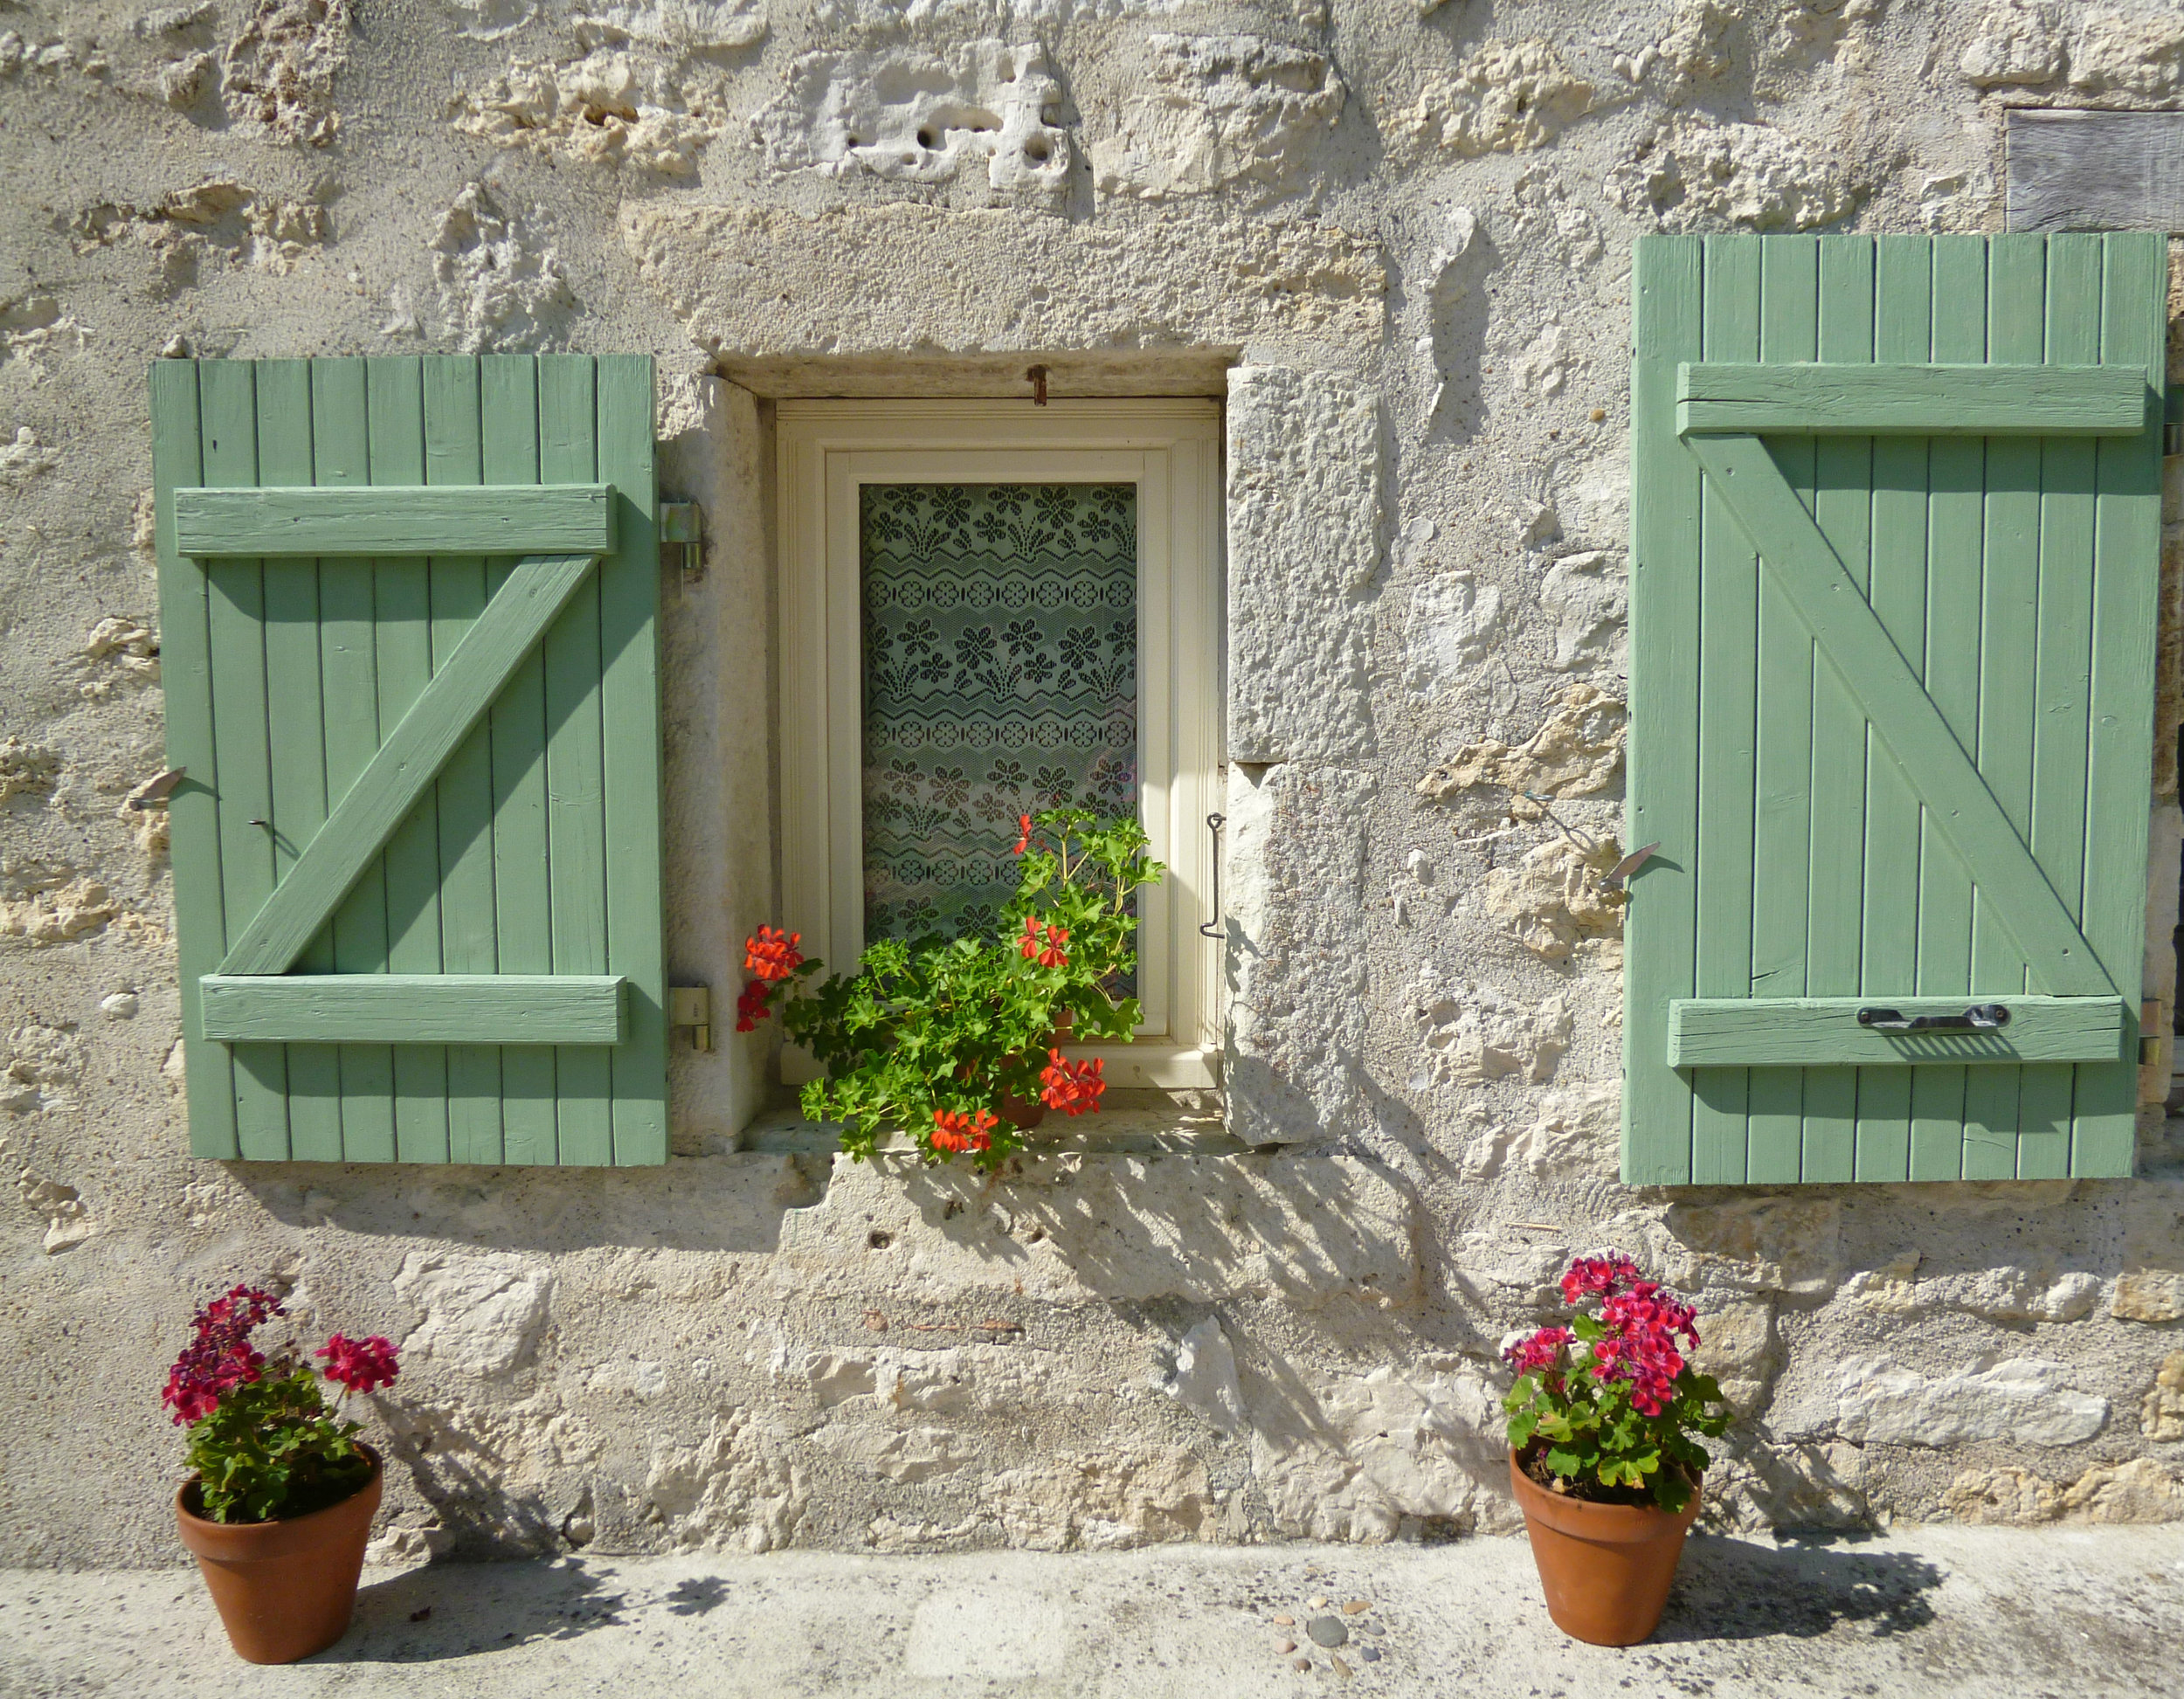 The green shutters supported (photographically) by the geraniums.